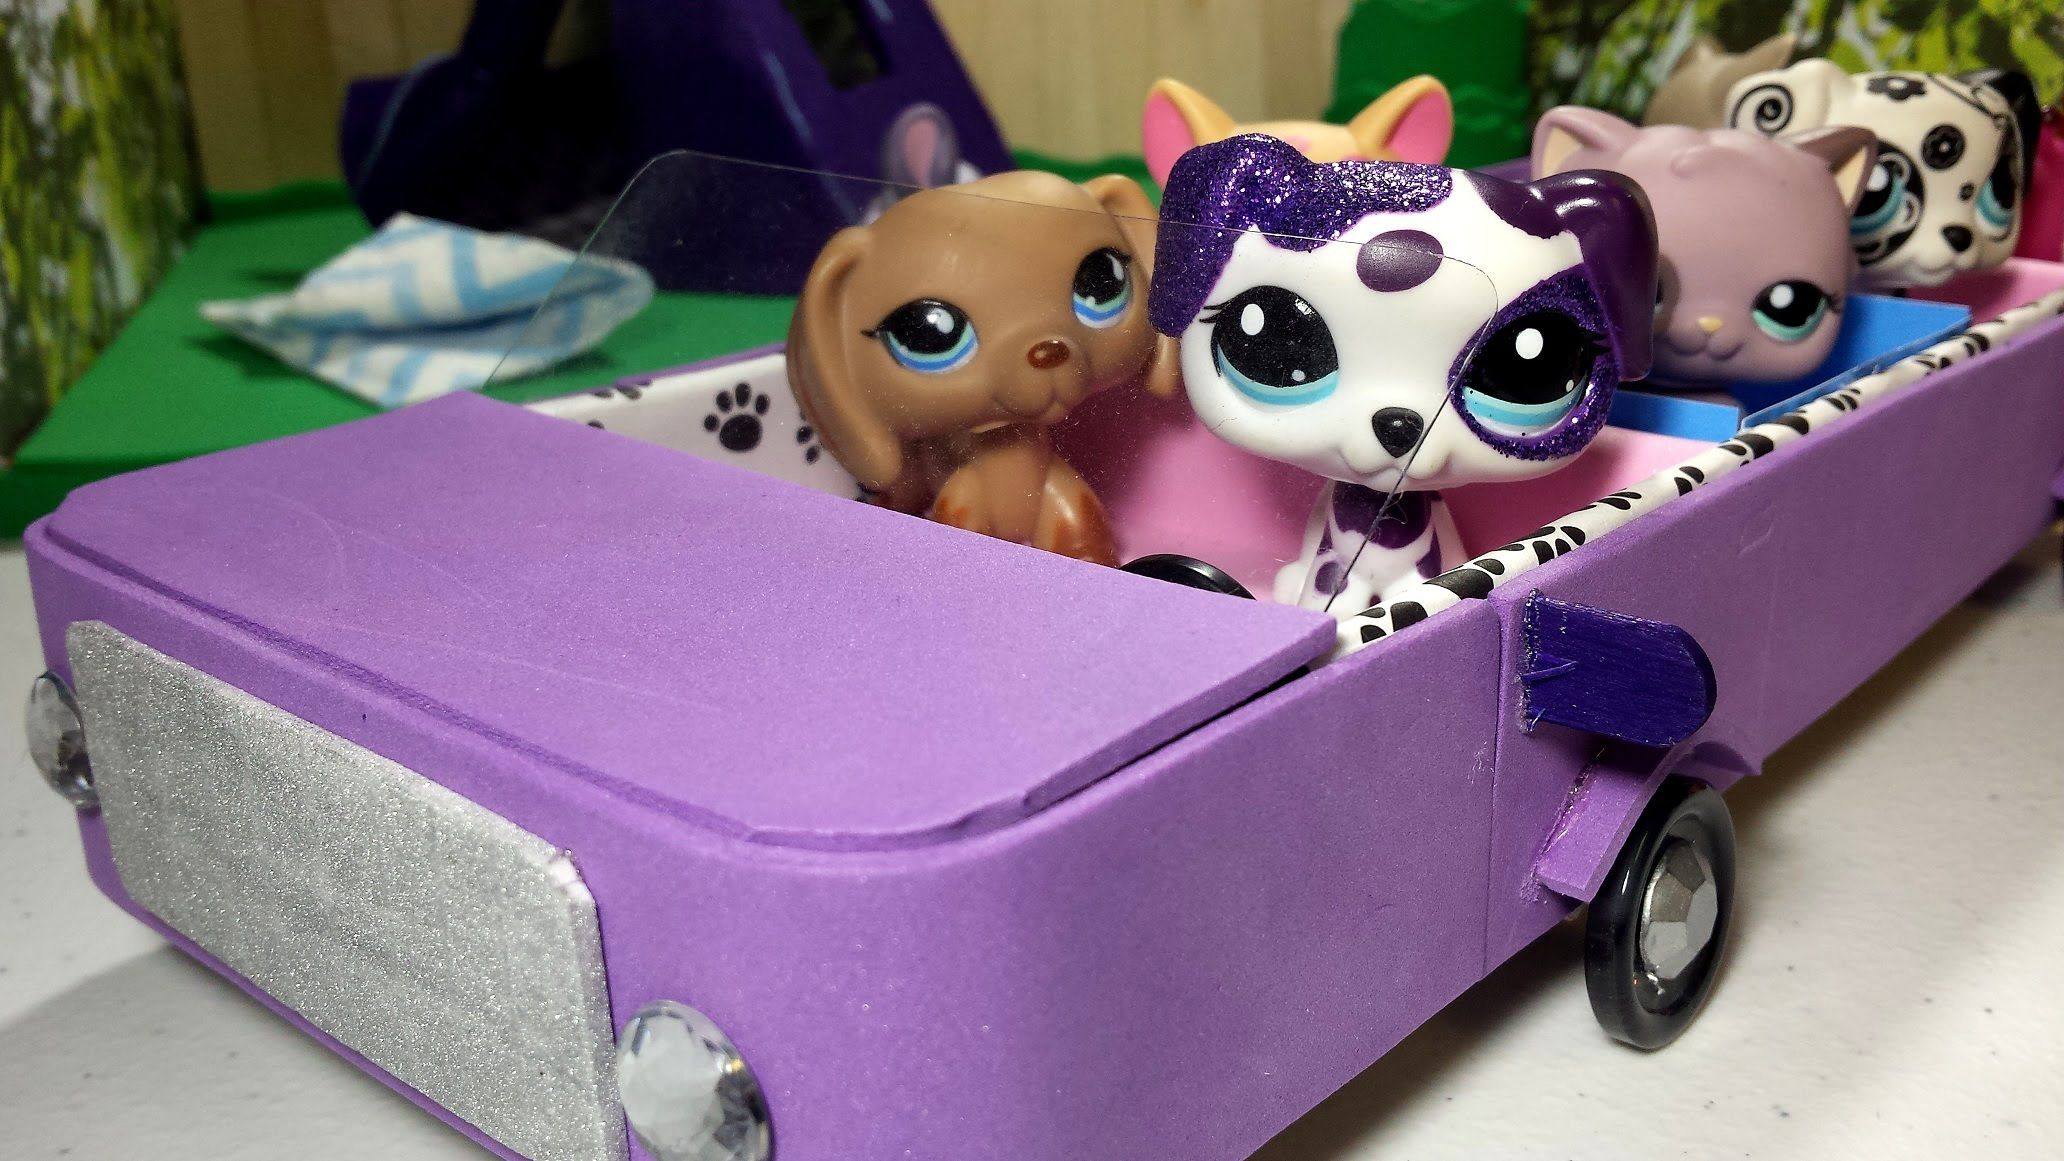 How to Make an LPS Car - Limo: Doll DIY